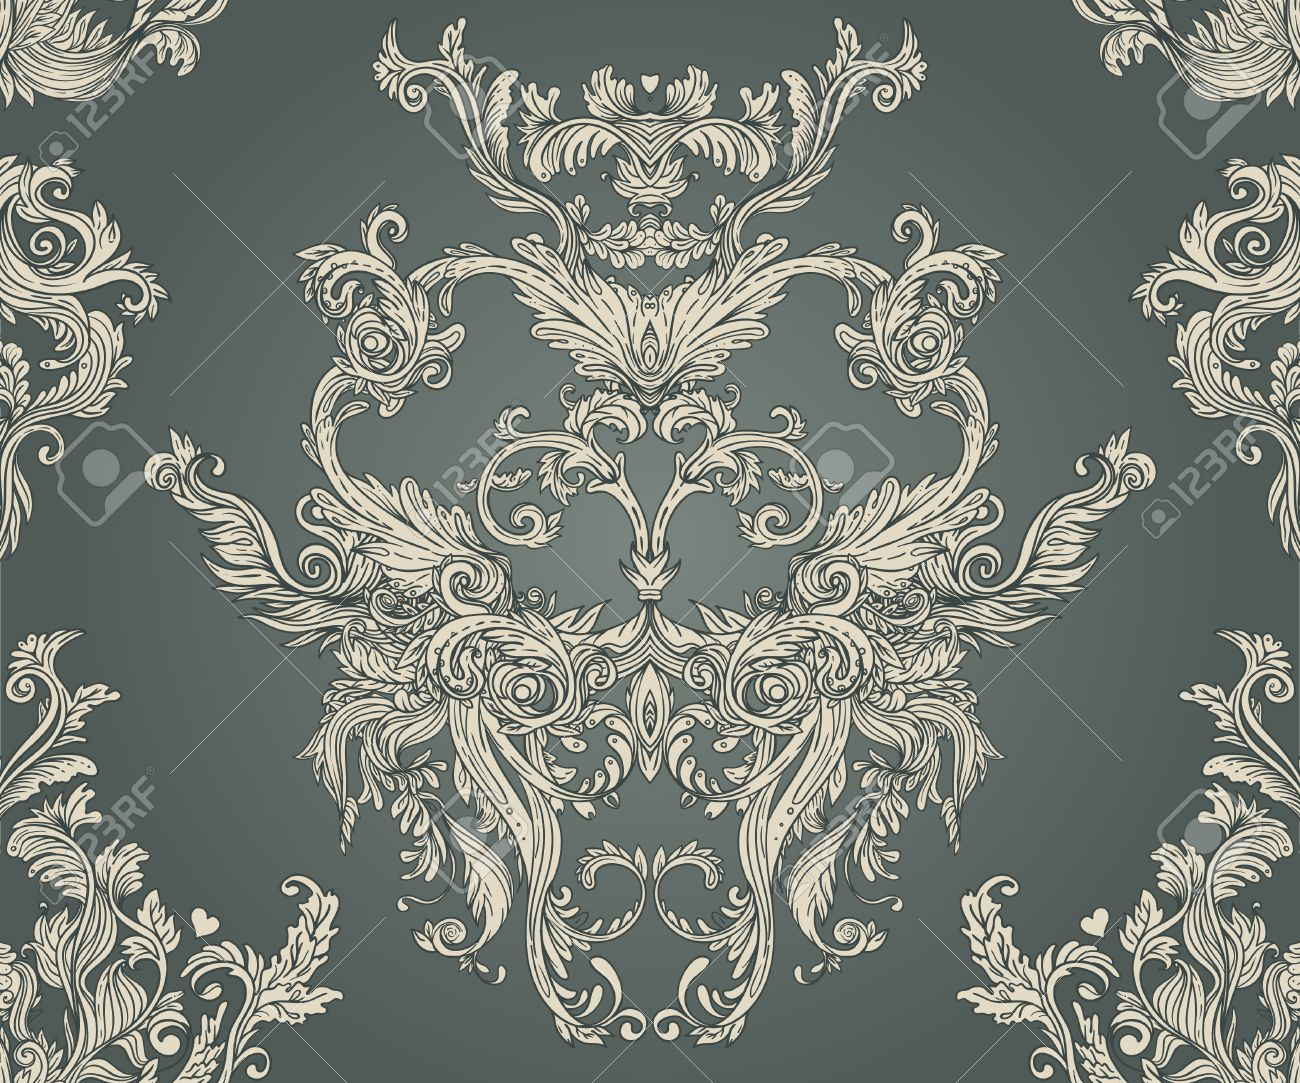 Vintage background ornate baroque pattern vector illustration stock - Vintage Background Ornate Baroque Pattern Vector Illustration Stock Vector 33592509